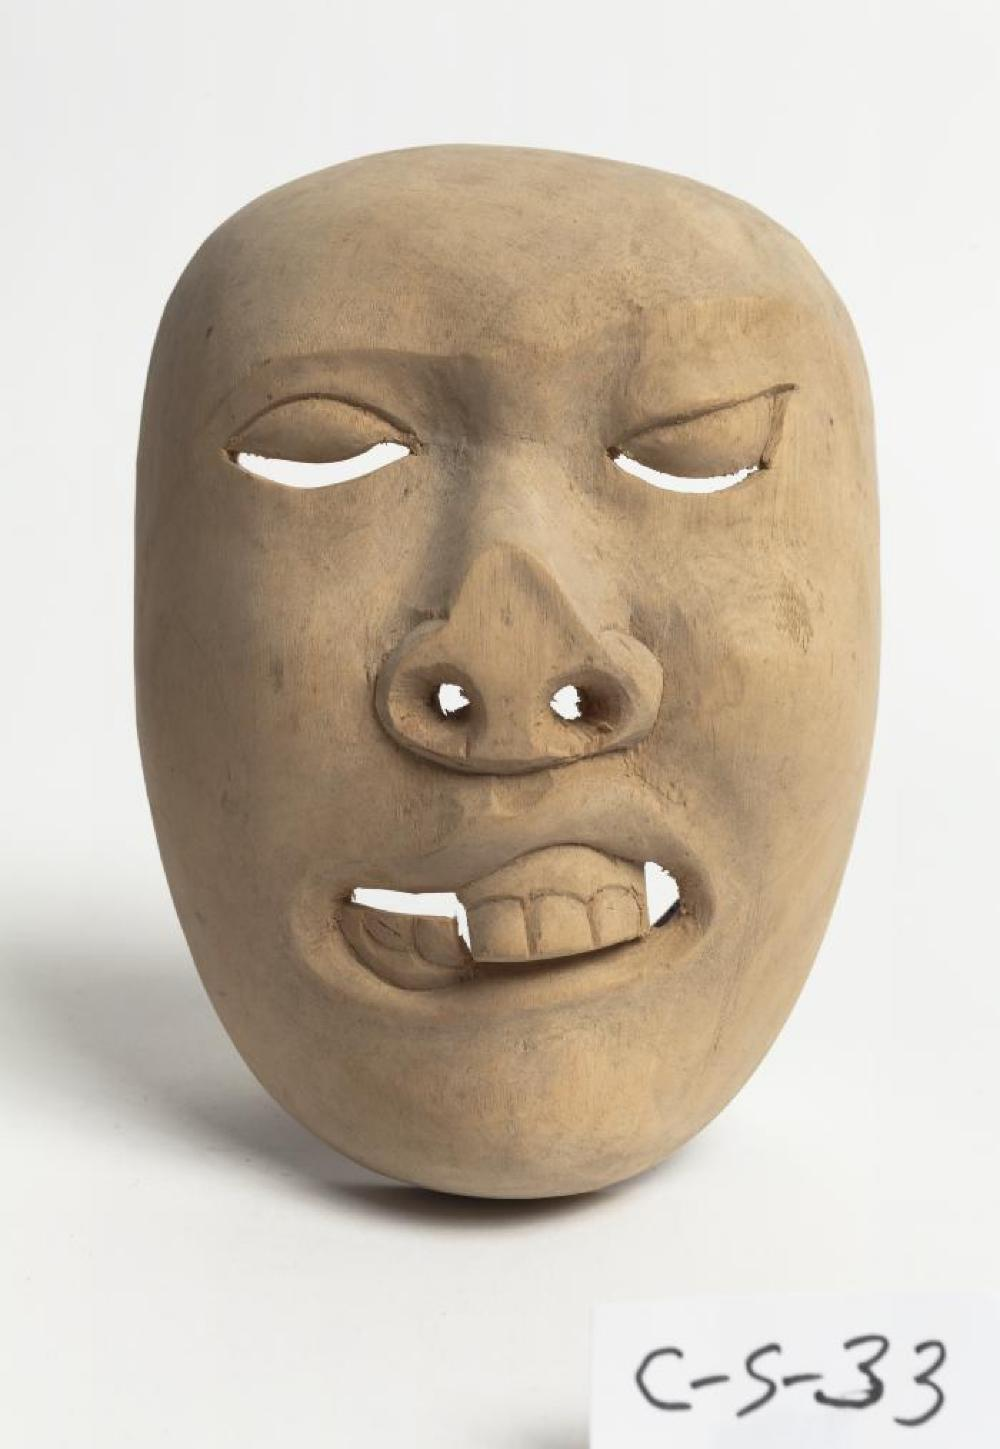 Balinese; Topeng Bondres Mask; 20th century; Wood; 6 13/16 x 5 1/16 x 2 1/4 in.; Collection of Isamu Noguchi. (Study Collection; Collectibles, C-S-33)